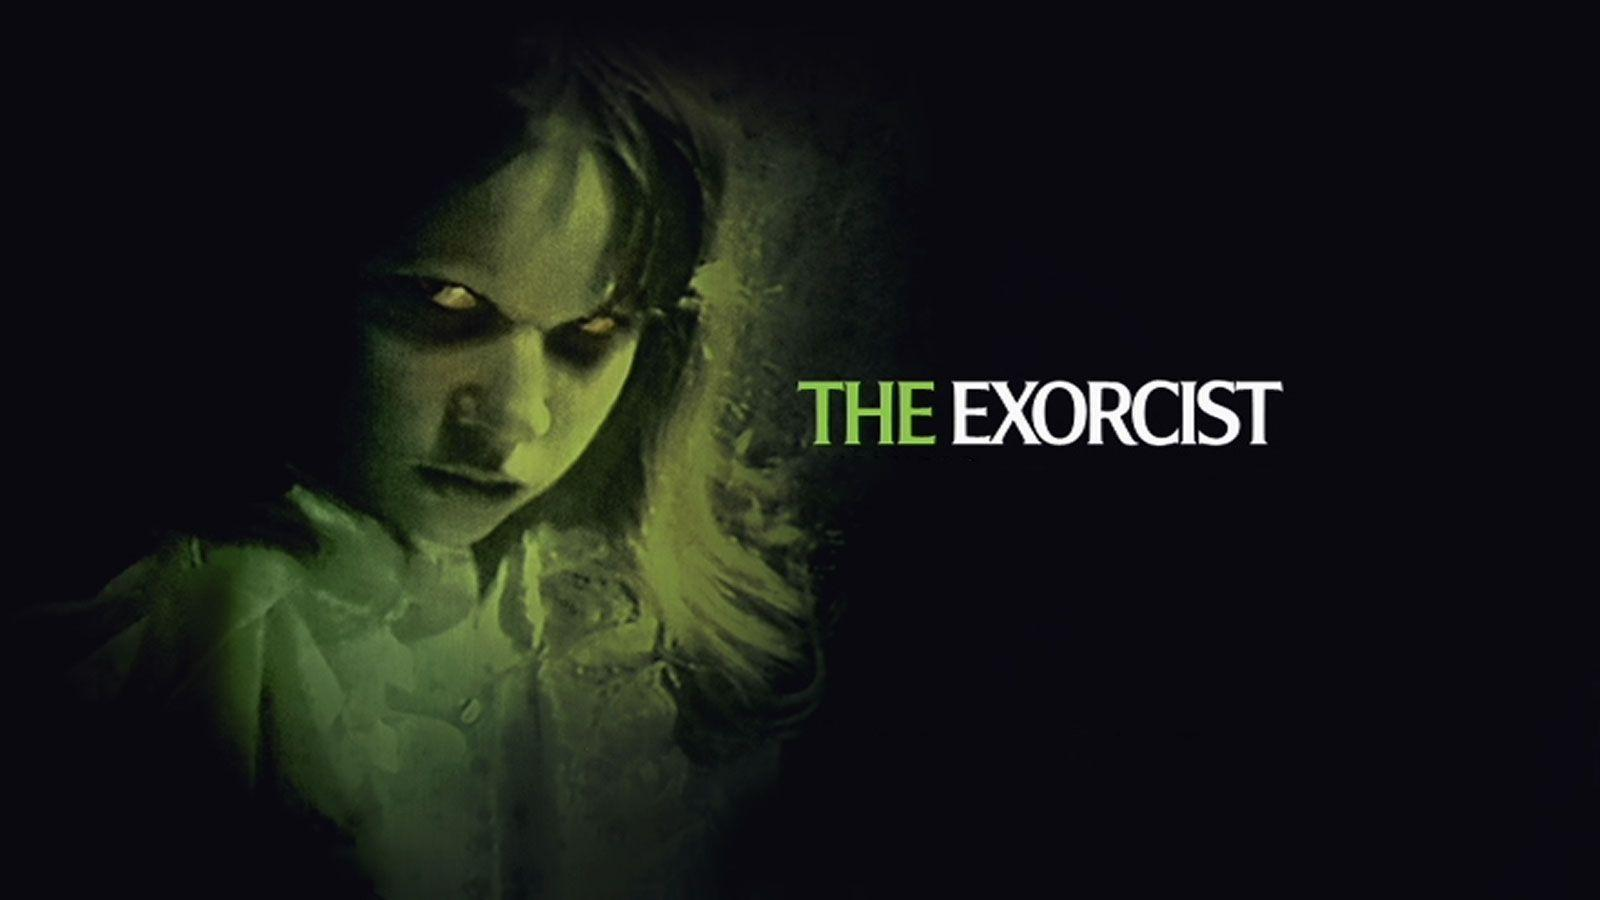 the exorcist wallpaper -#main